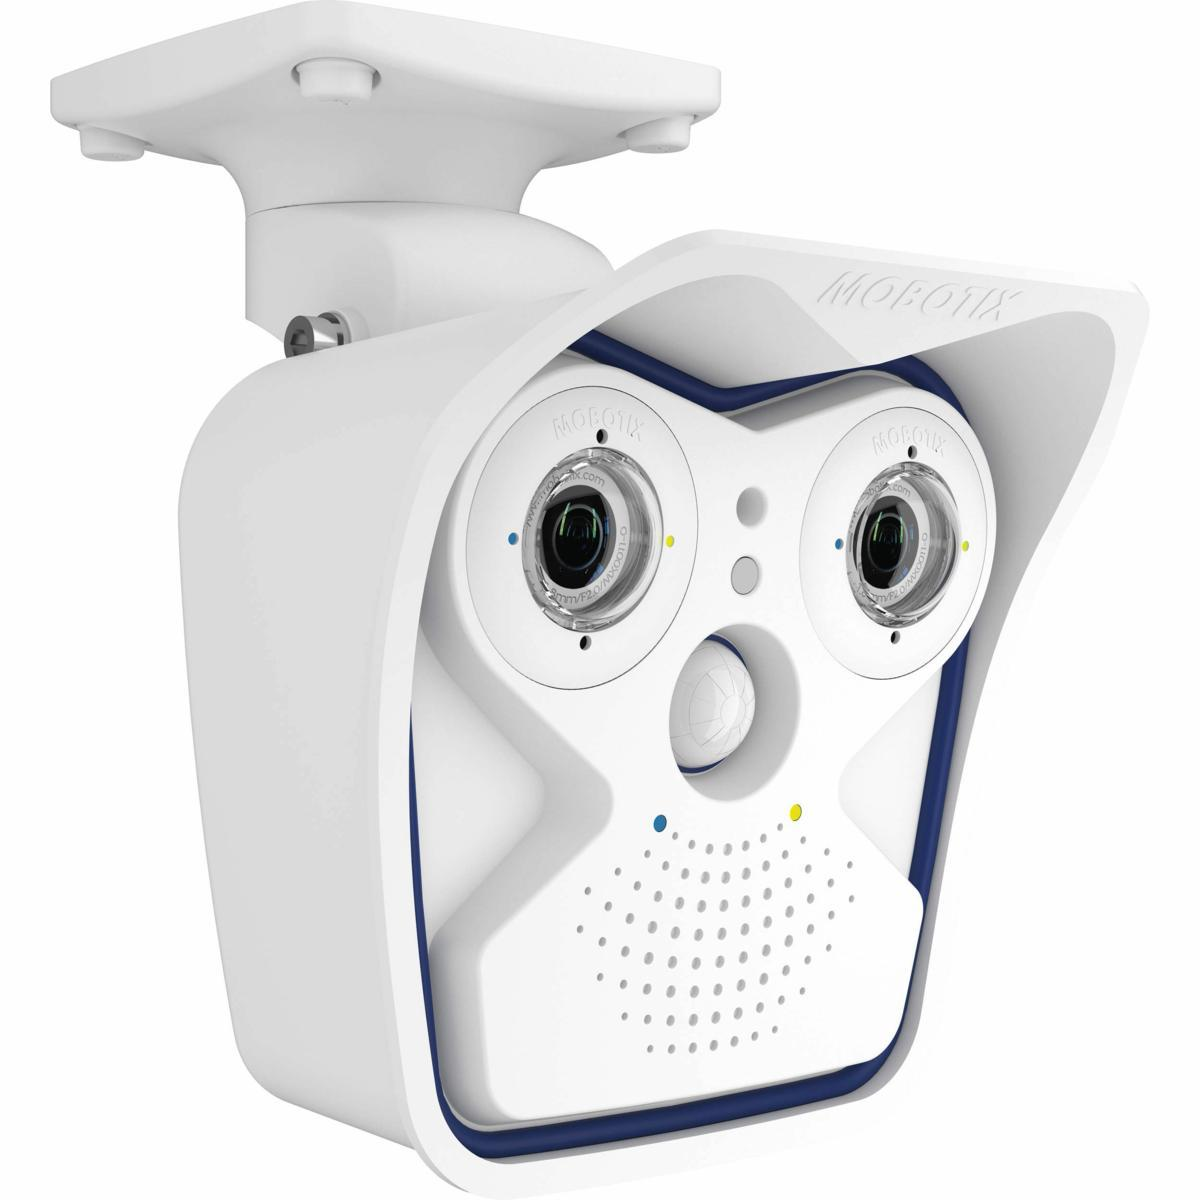 SICE Distributore Ufficiale  Mobotix Outdoor Cameras AllroundDual M15D Sec 2xL20-F1.8 (Day&Night) 6MP   M15D-SECD20N20-6